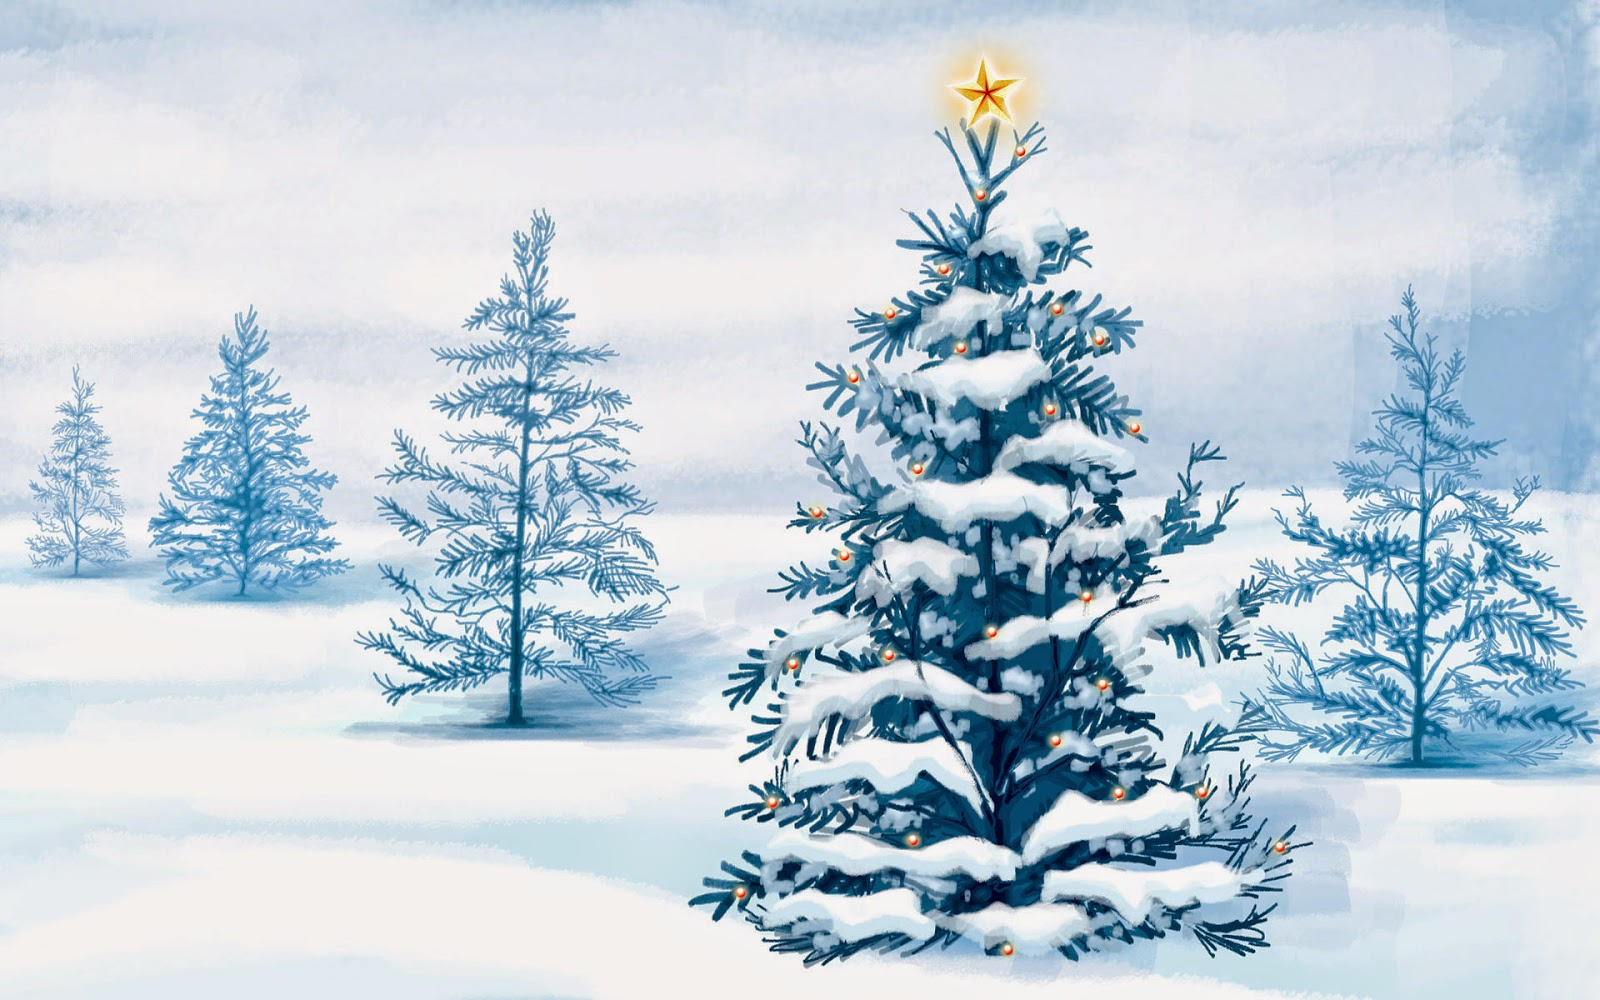 Christmas-tree-covered-in-snow-with-star-shining-at-top-cartoon-image-pictures.jpg